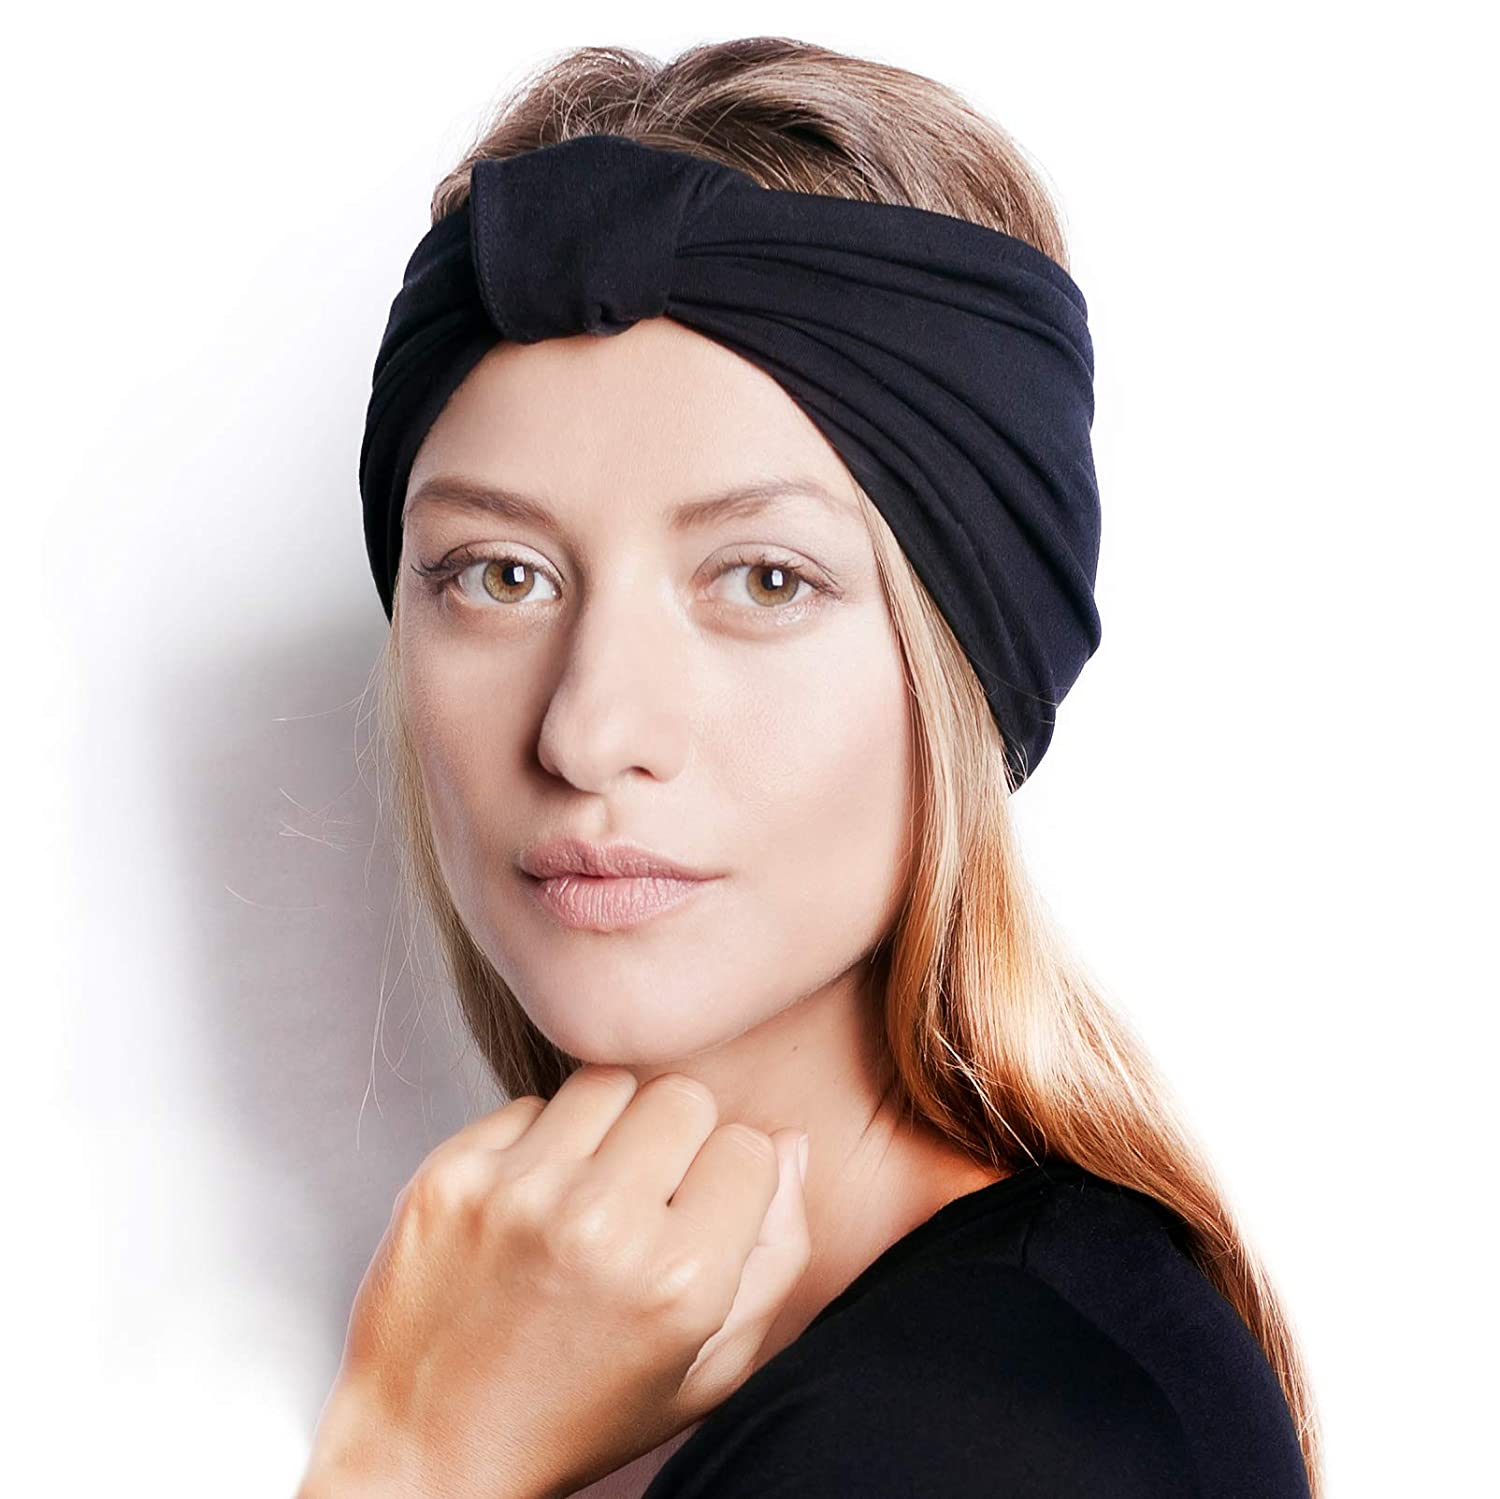 Watch - How to thick a wear stretchy headband video